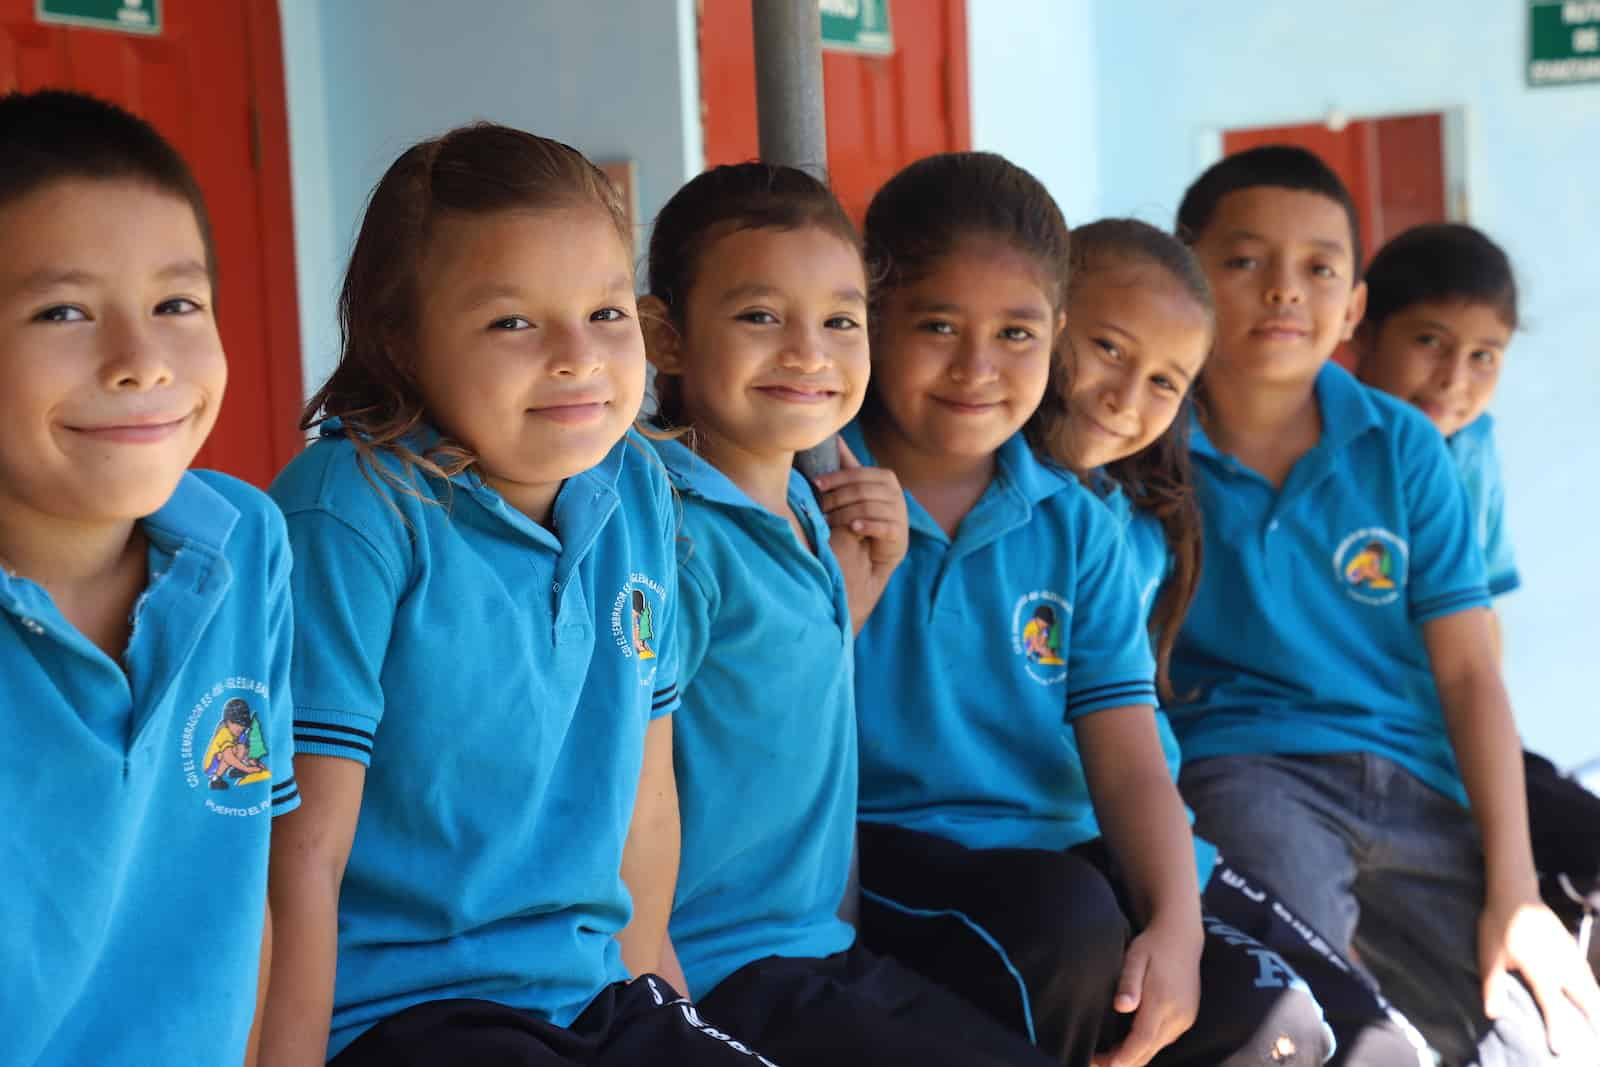 Children in blue shirts sit on a porch together.